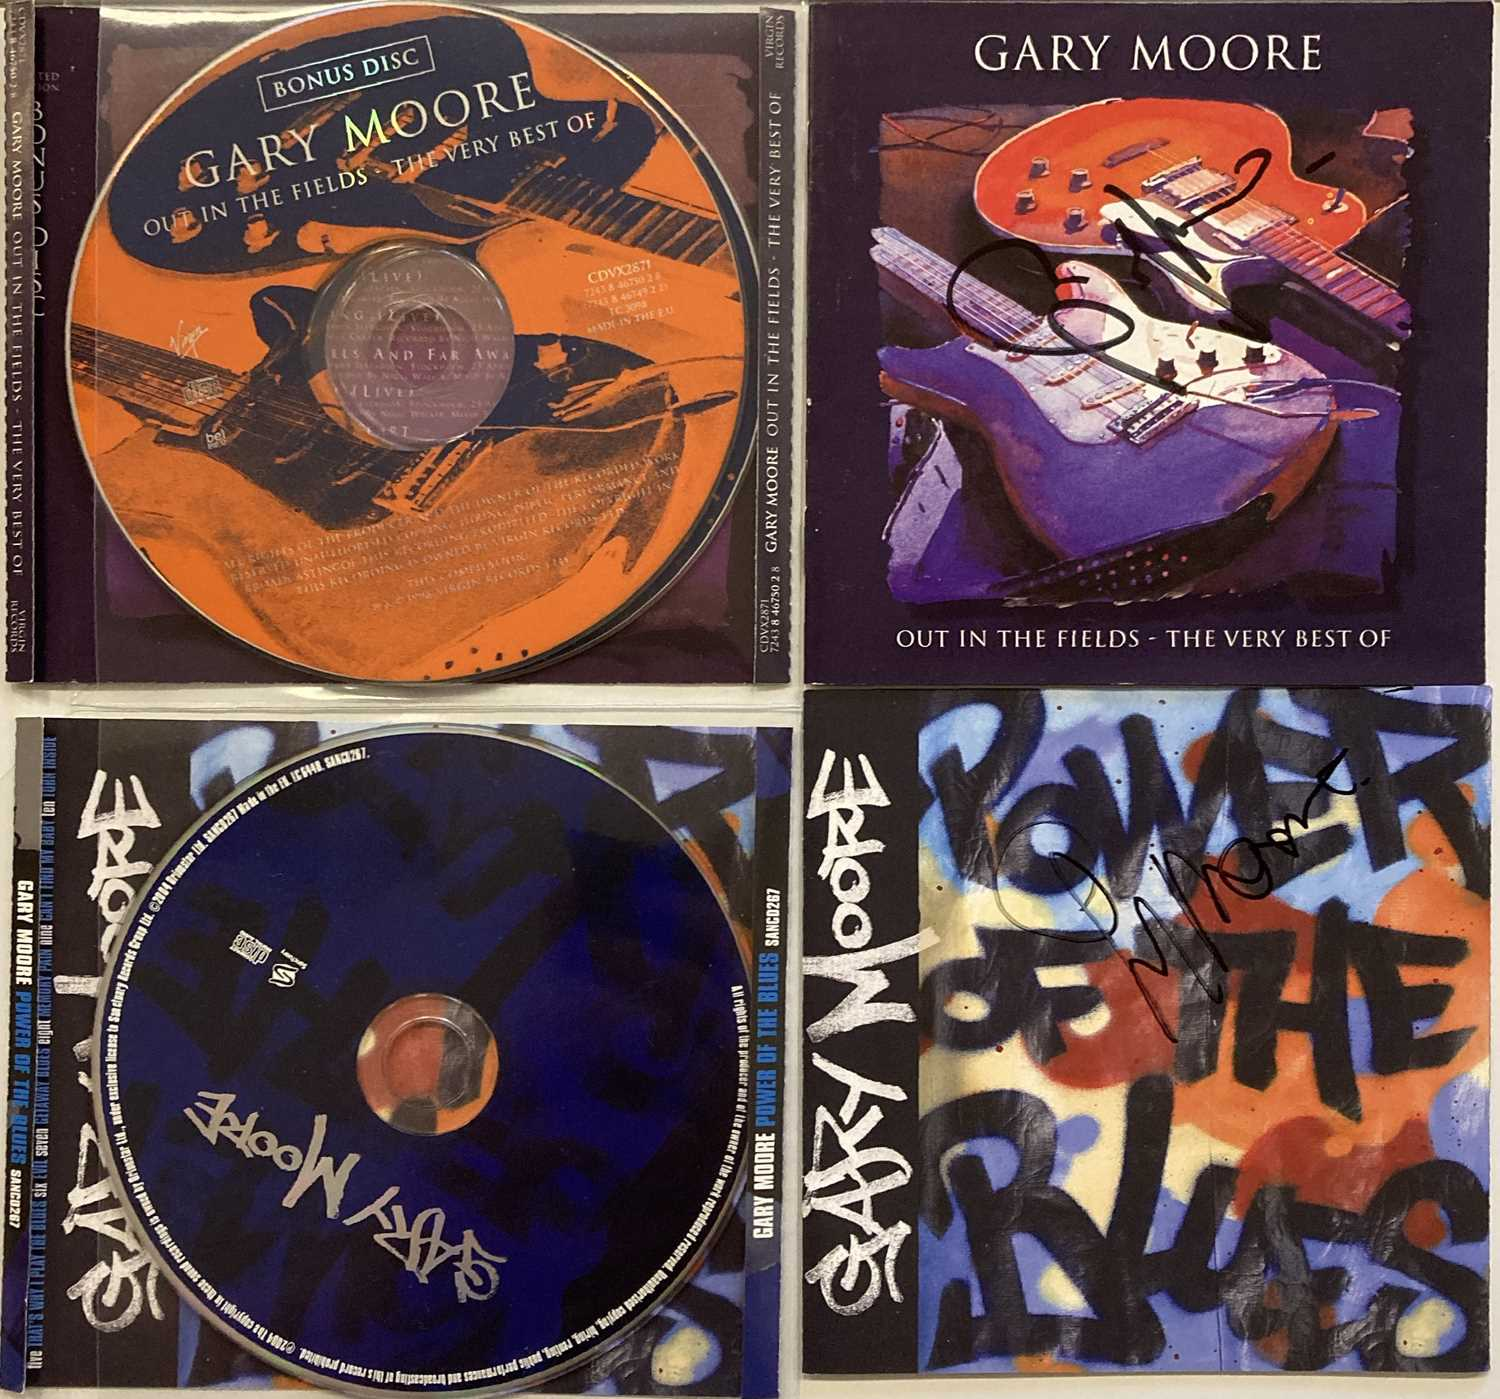 GARY MOORE - SIGNED CD COVERS.